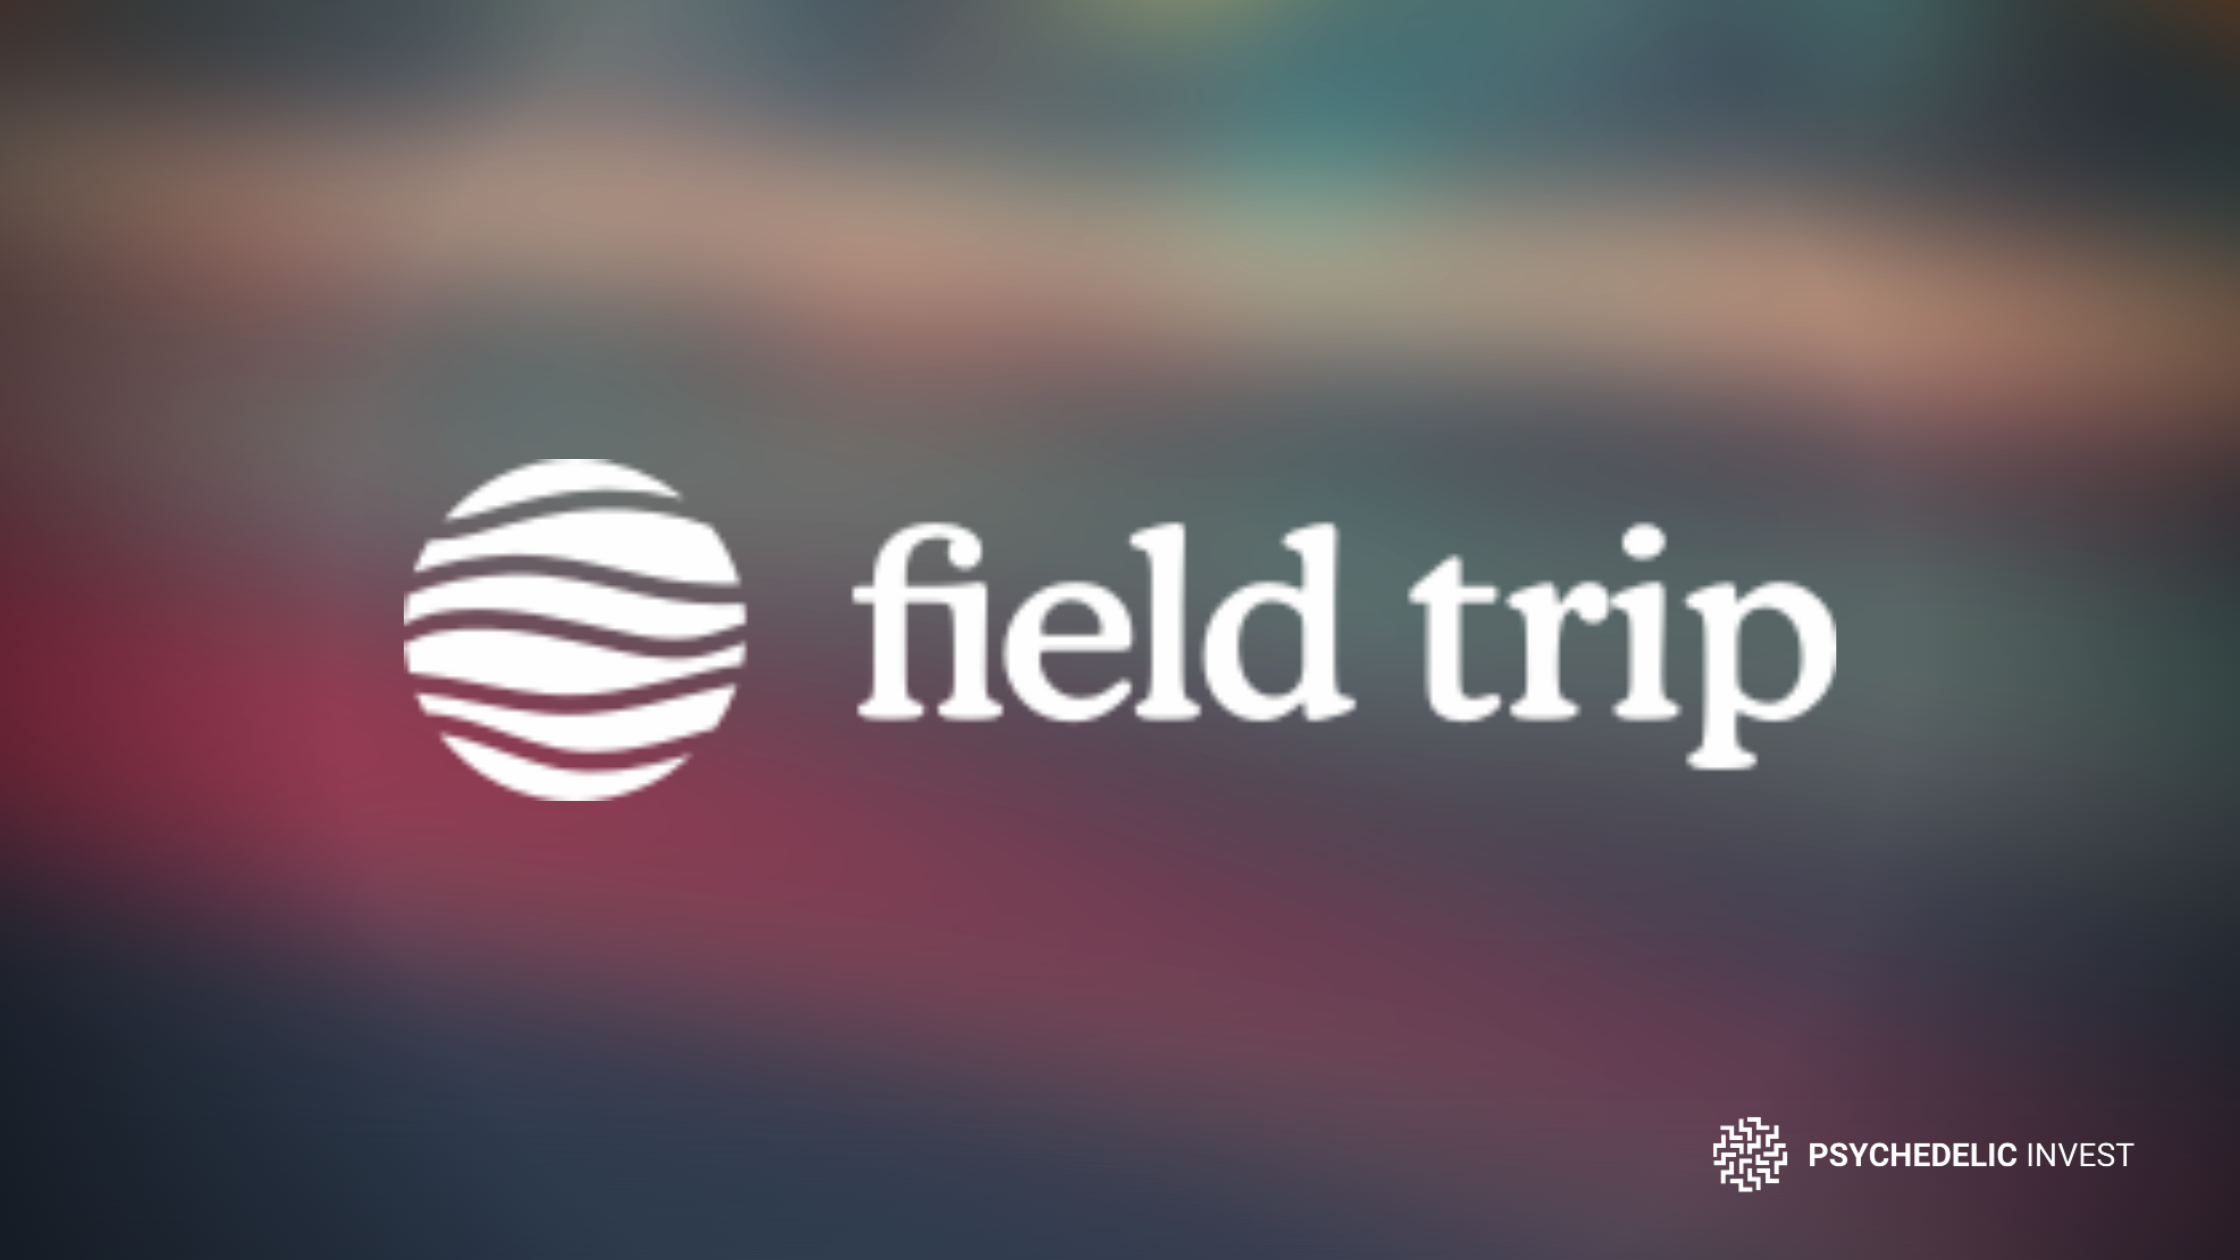 Field Trip psychedelics